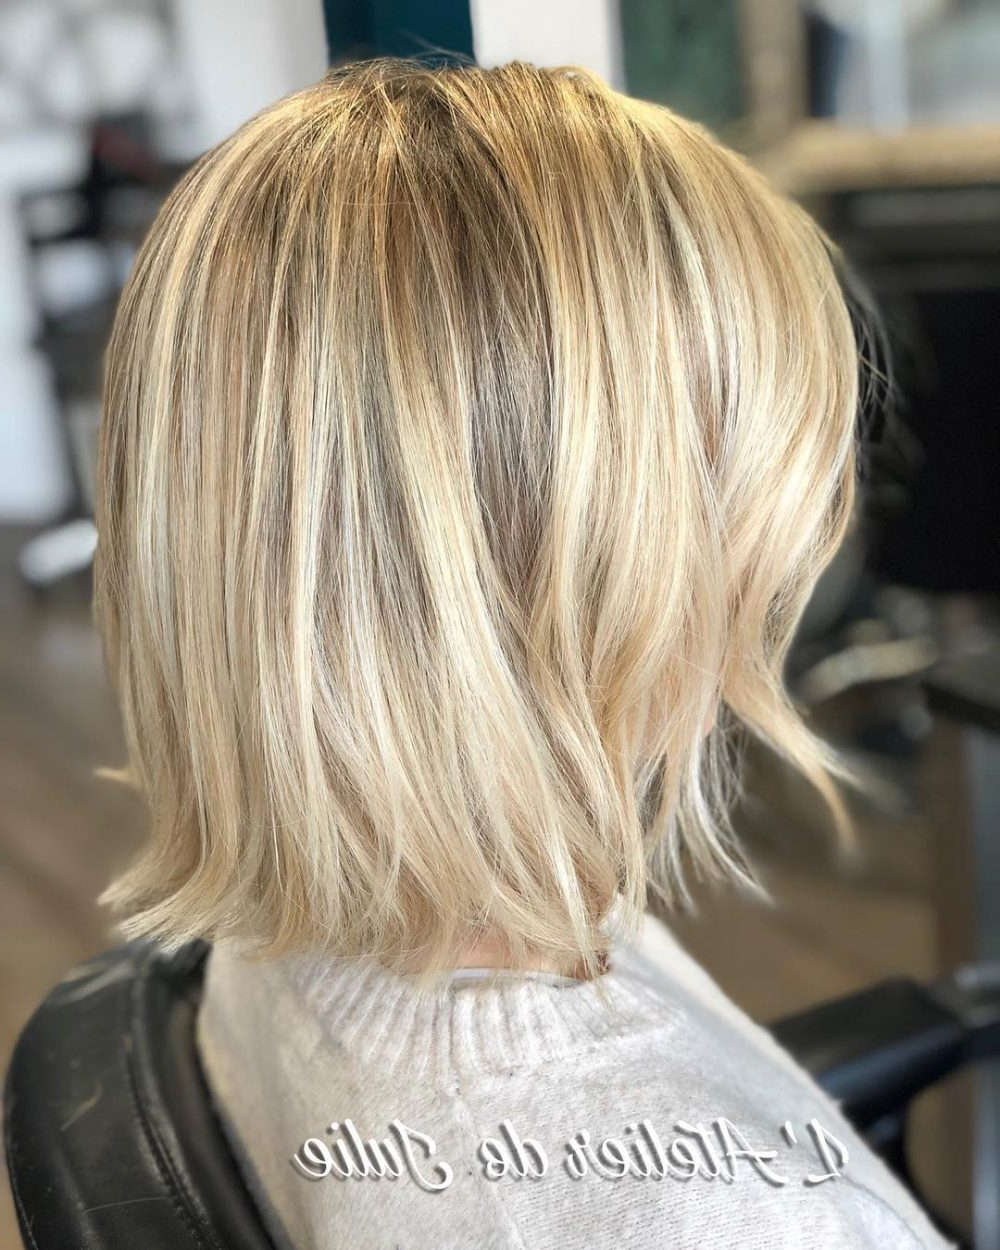 34 Perfect Short Haircuts And Hairstyles For Thin Hair (2018) Intended For Short Haircuts For Thin Hair And Oval Face (View 5 of 25)